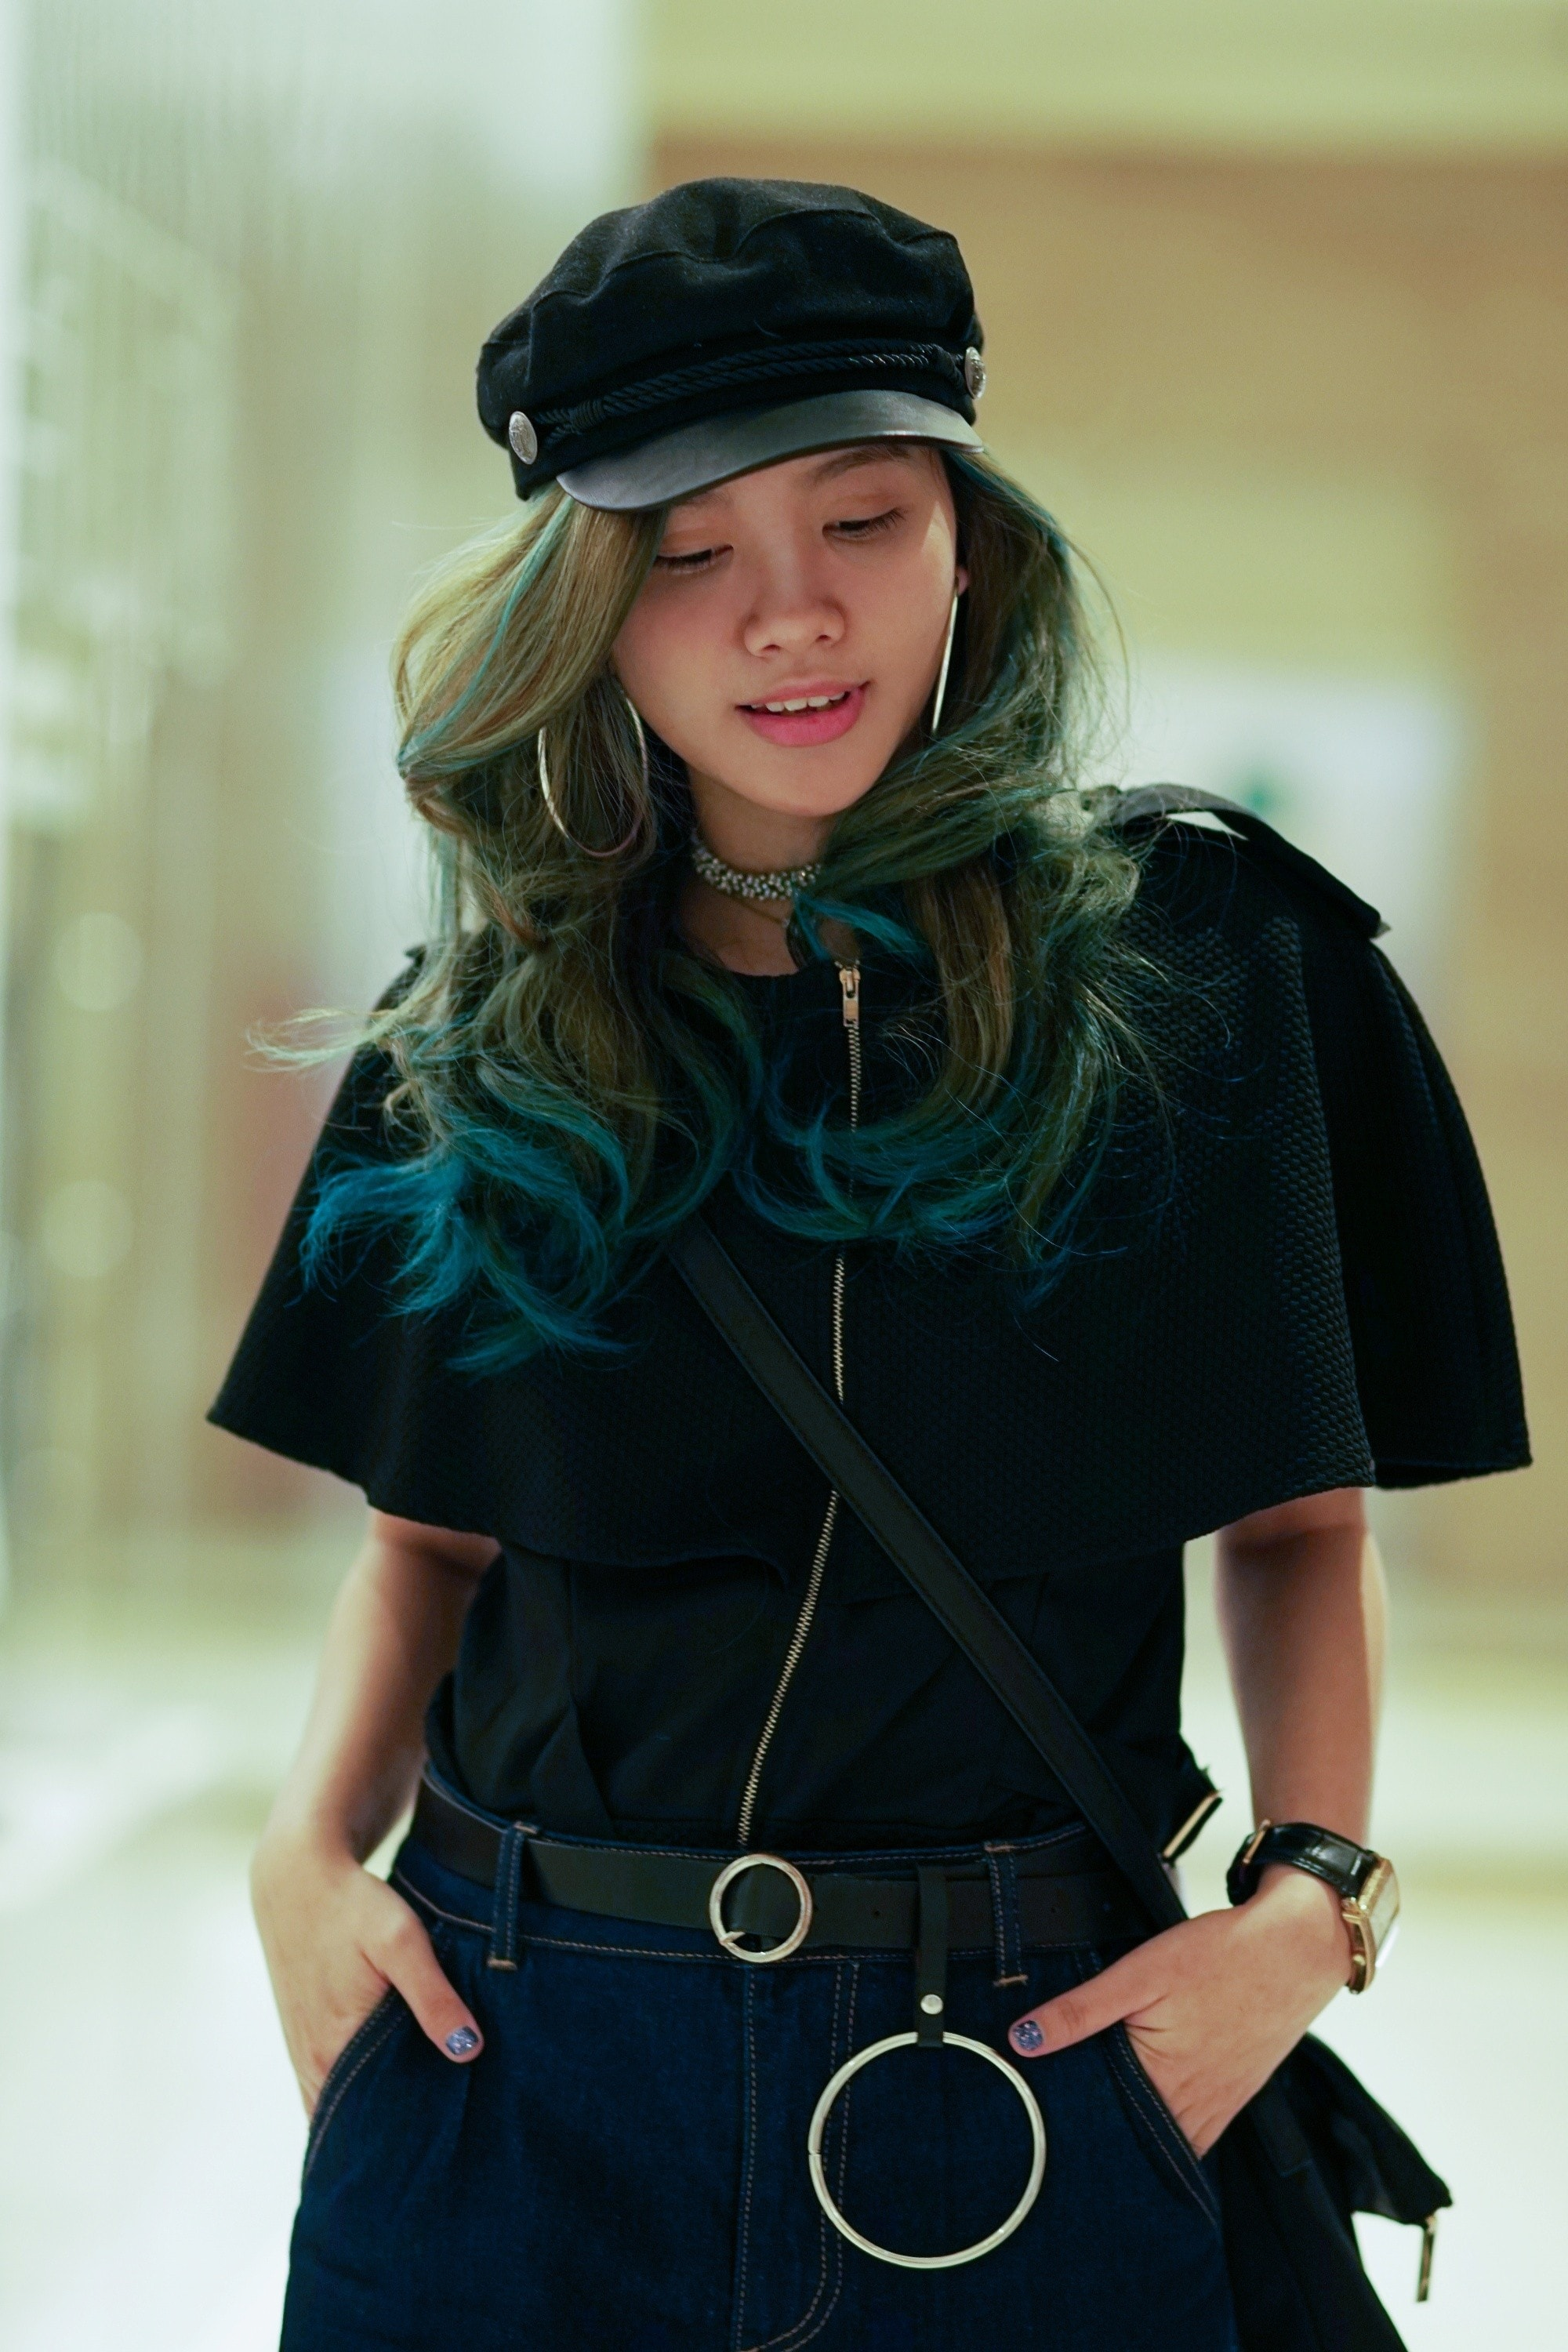 Asian woman with blue and green wavy hair wearing a hat